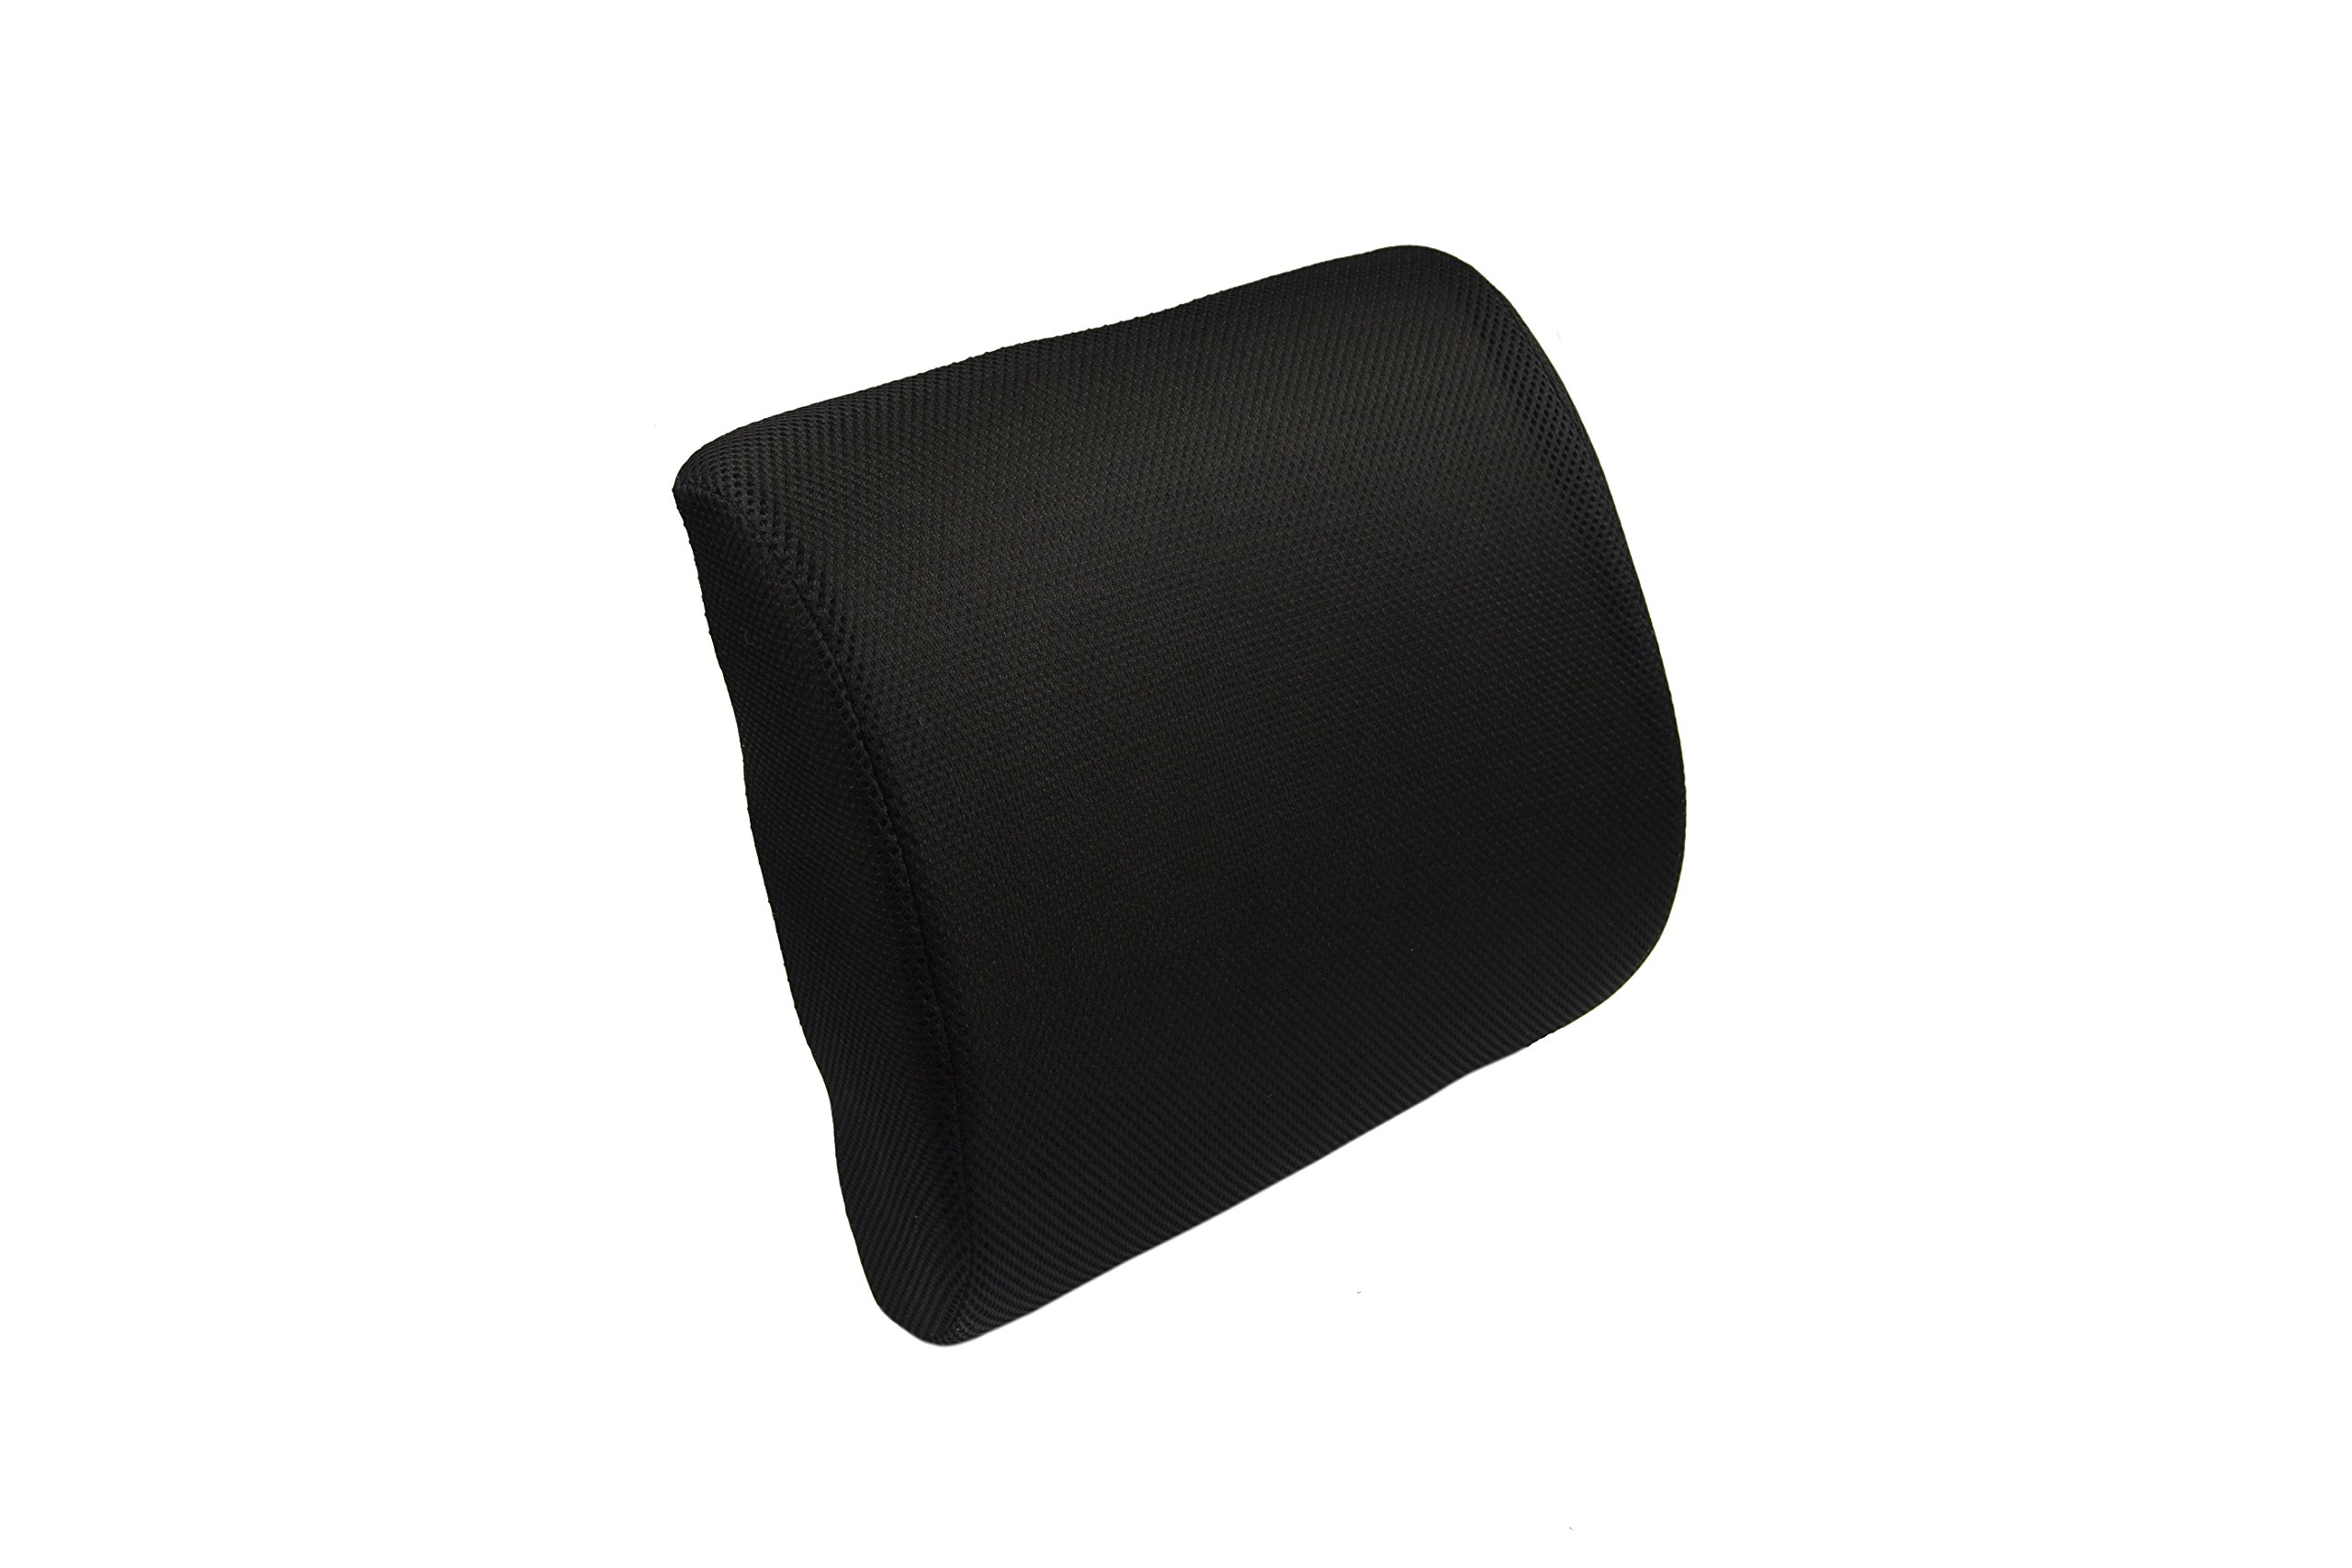 Memory Foam Back Cushions, Ergonomic Design For Lower Back Pain Relief, Lumbar Support Cushion Adjustable For Car or Office Chair